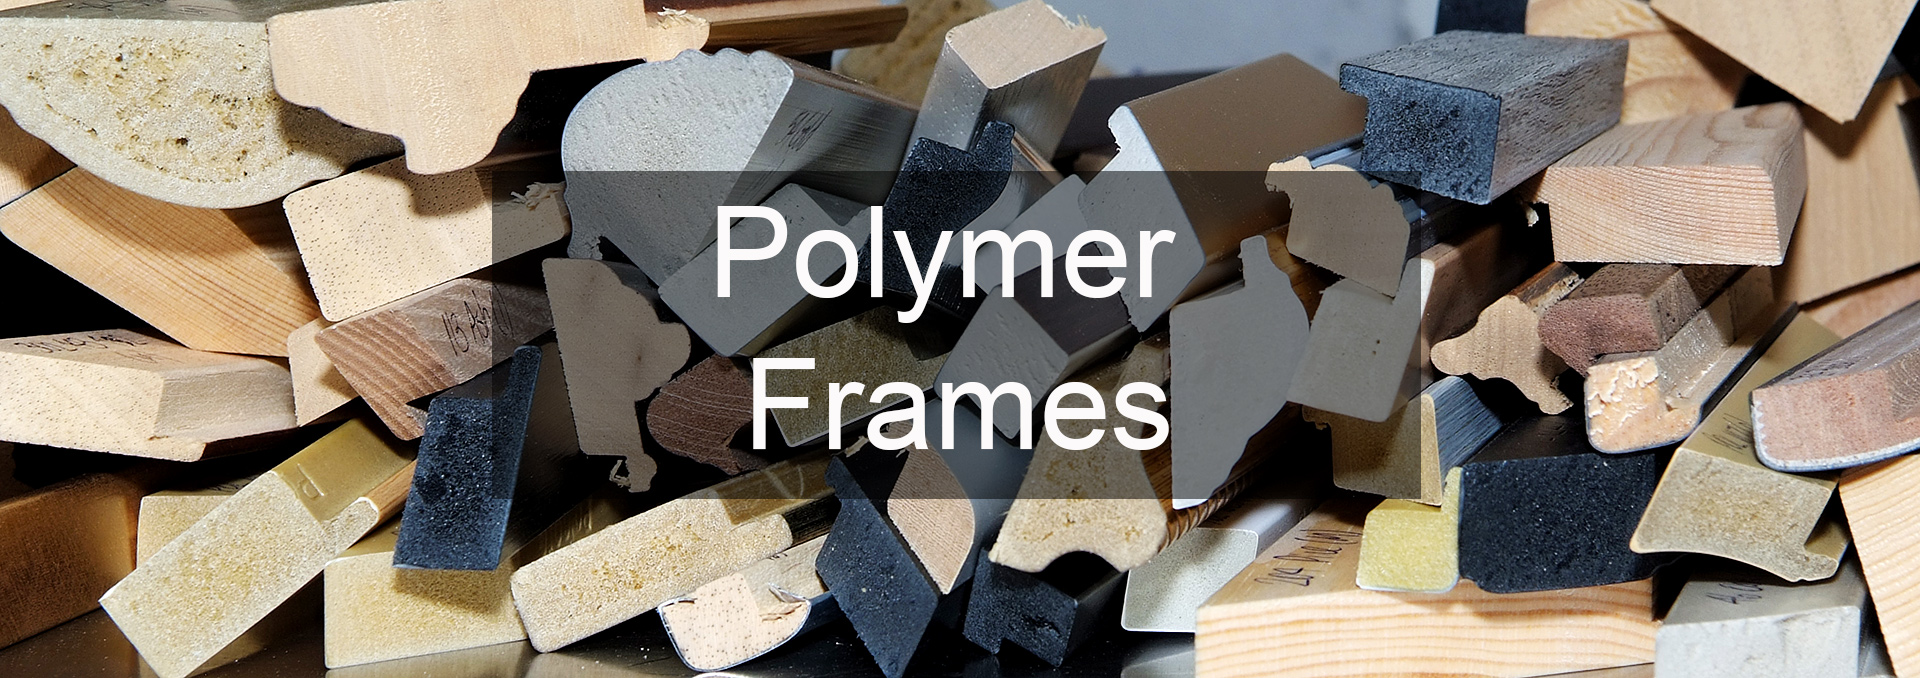 polymer-frames-shop-top